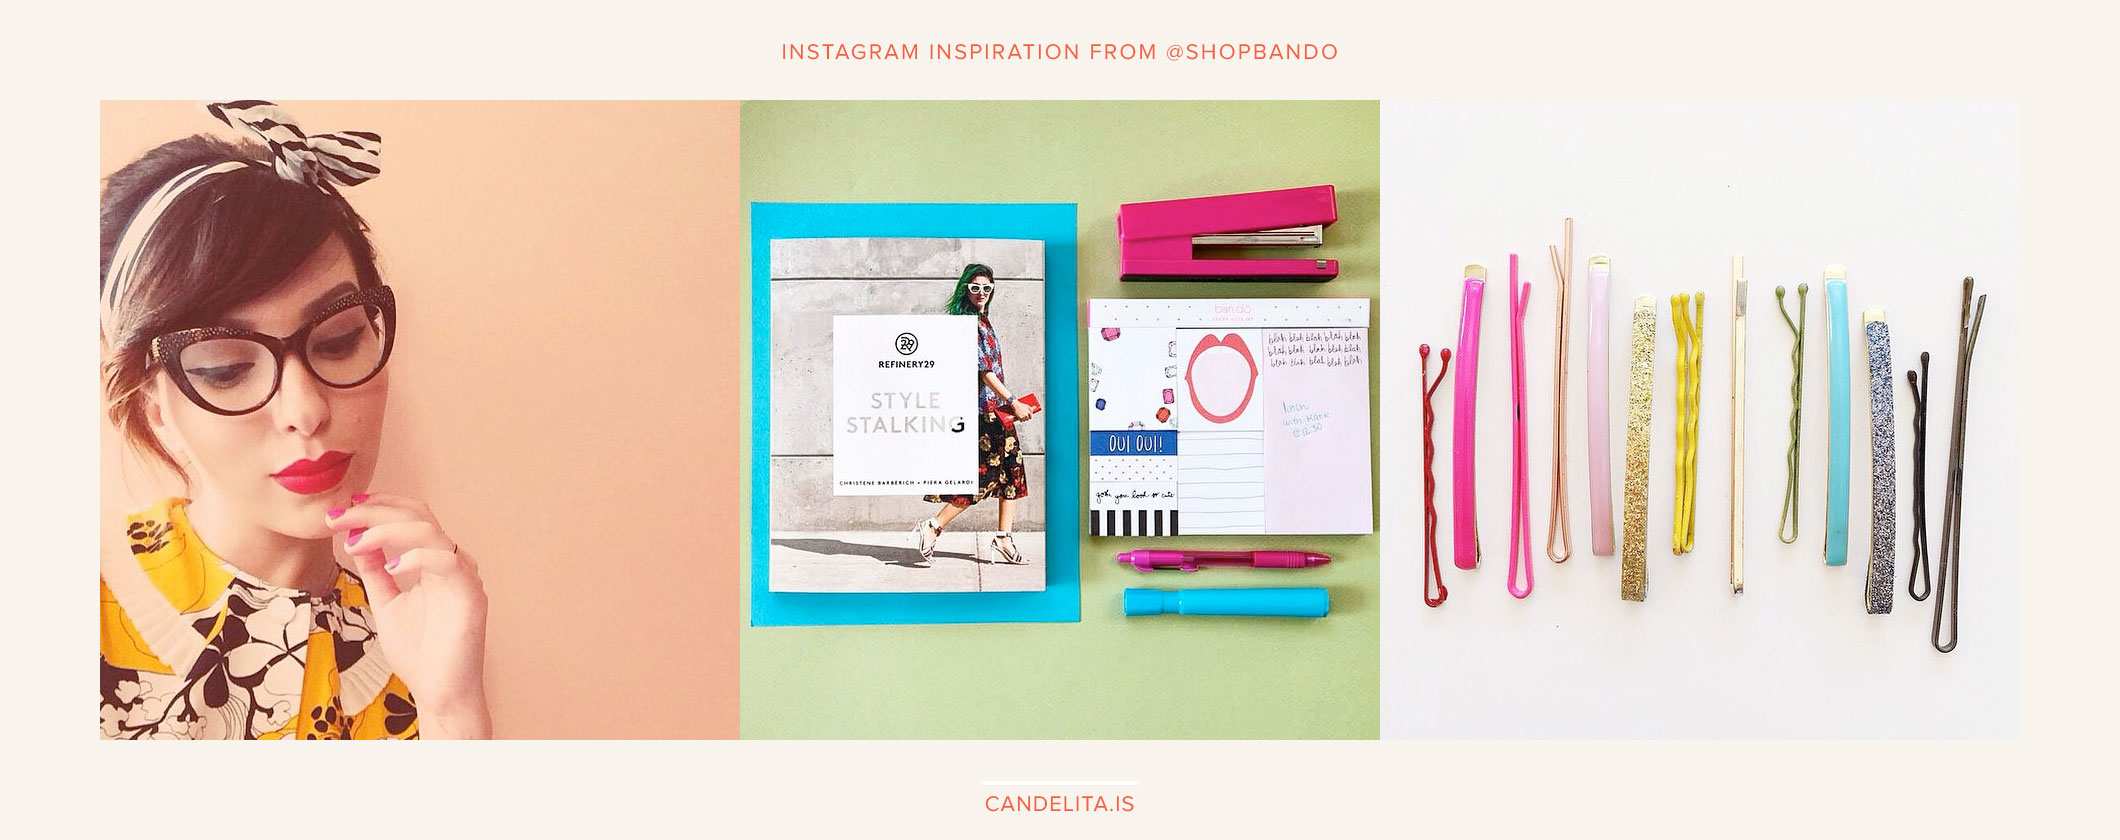 How to become famous on Instagram - Shop Bando